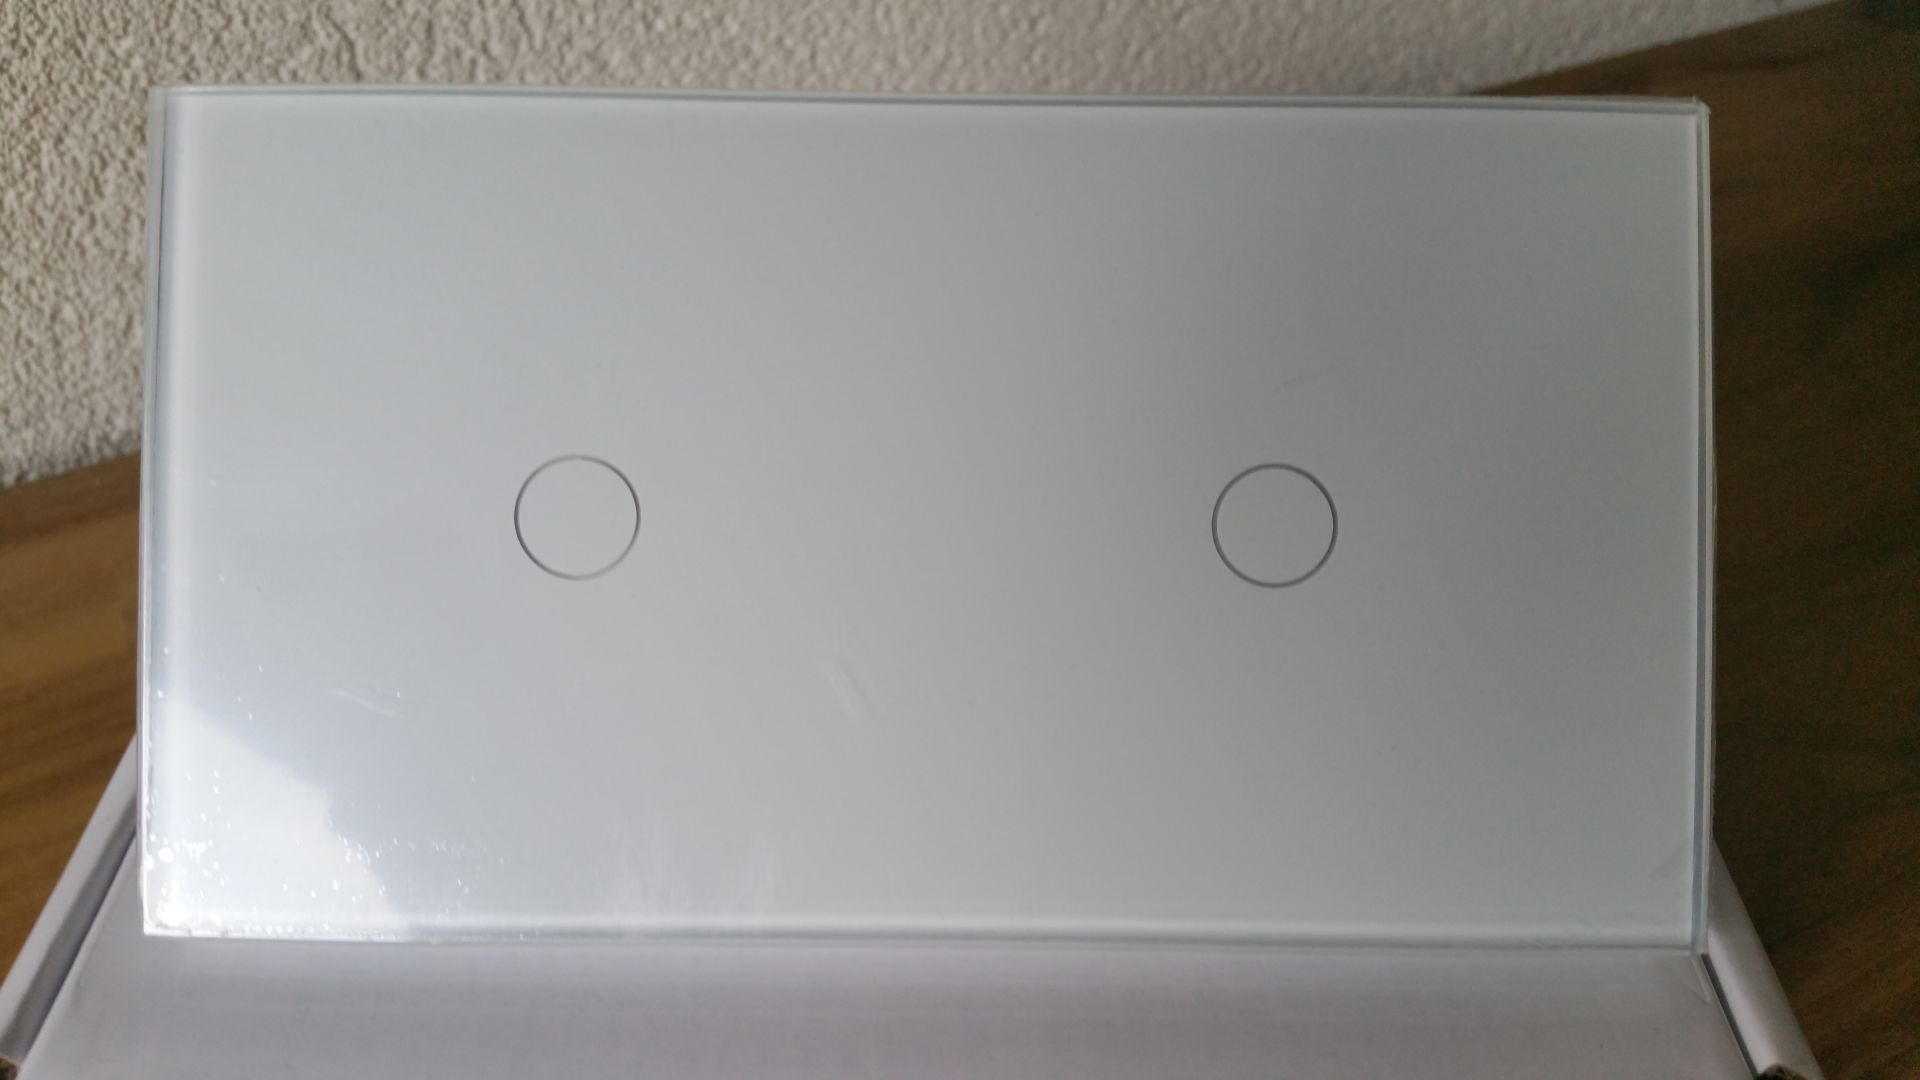 Dimmer Met Stopcontact Led Dimmer Remote Dubbel 1 43 1 Kanaal Wit Touch Dimmer